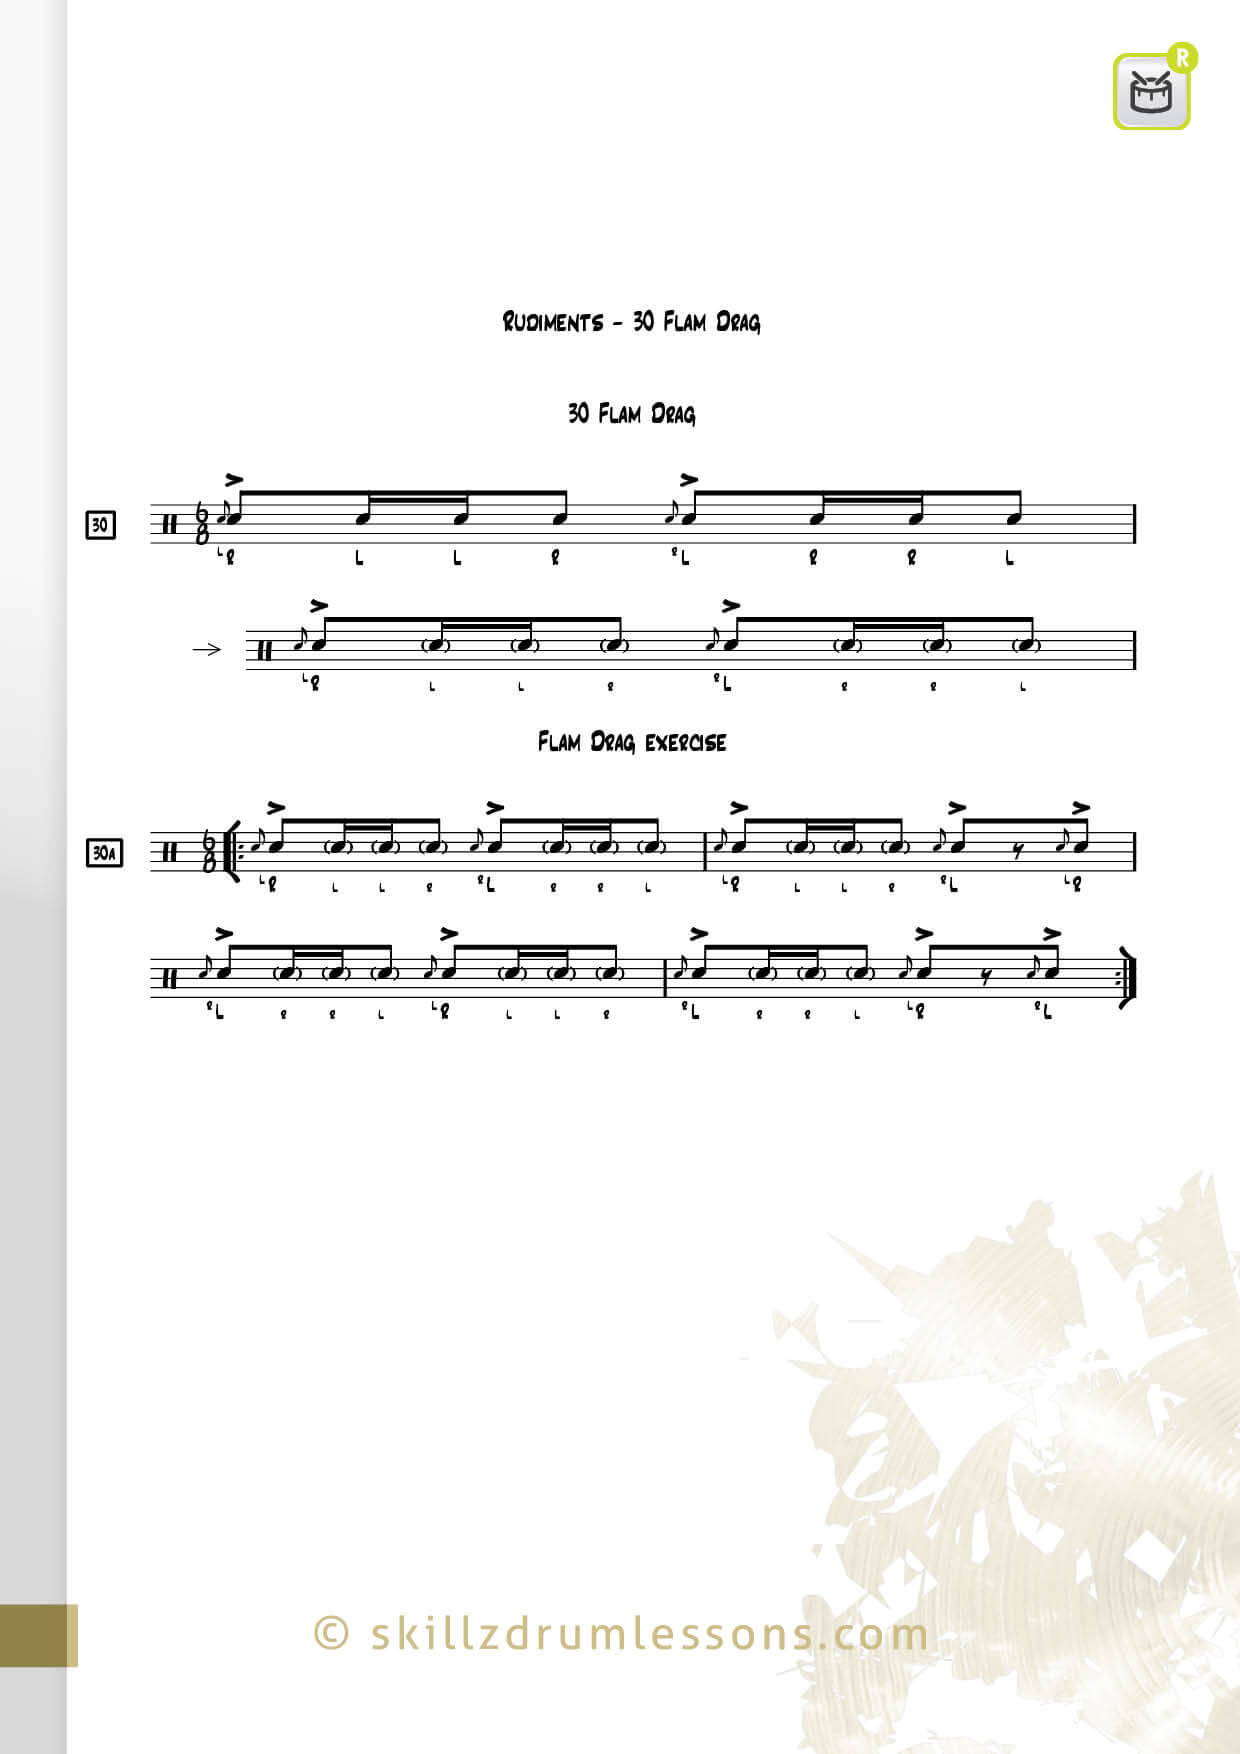 This is an image of the Official 40 Essential P.A.S. Rudiments #30 The Flam Drag by Skillz Drum Lessons